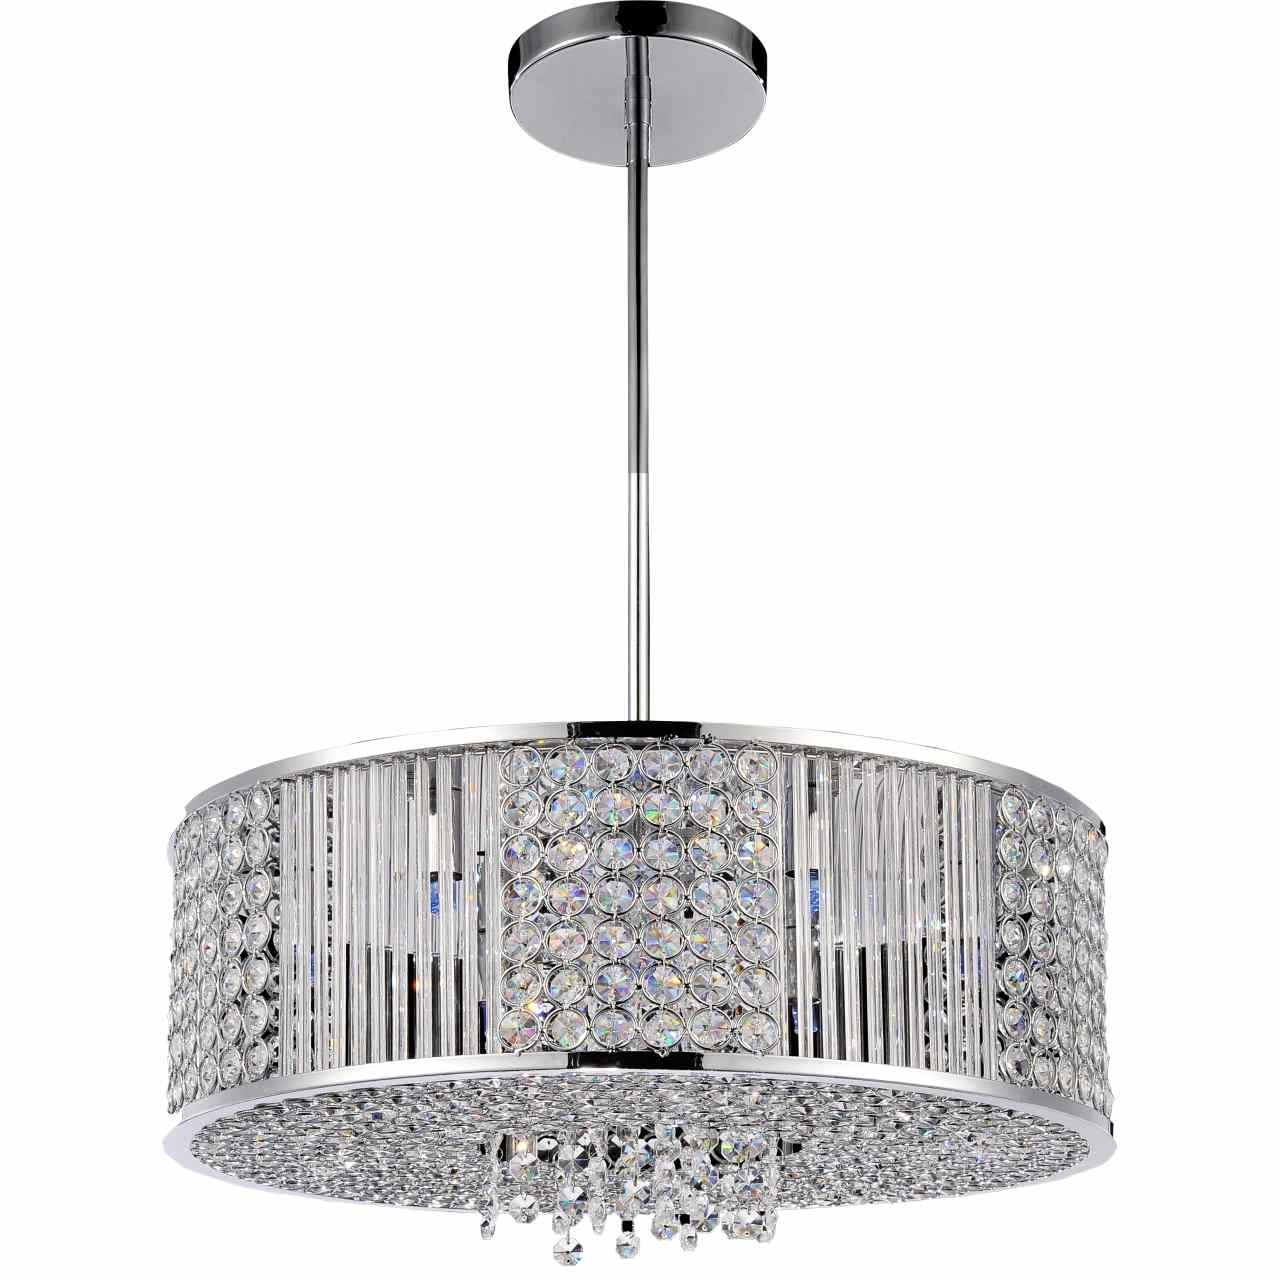 Modern Pendant Chandelier Lighting Within Preferred Brizzo Lighting Stores (View 8 of 15)